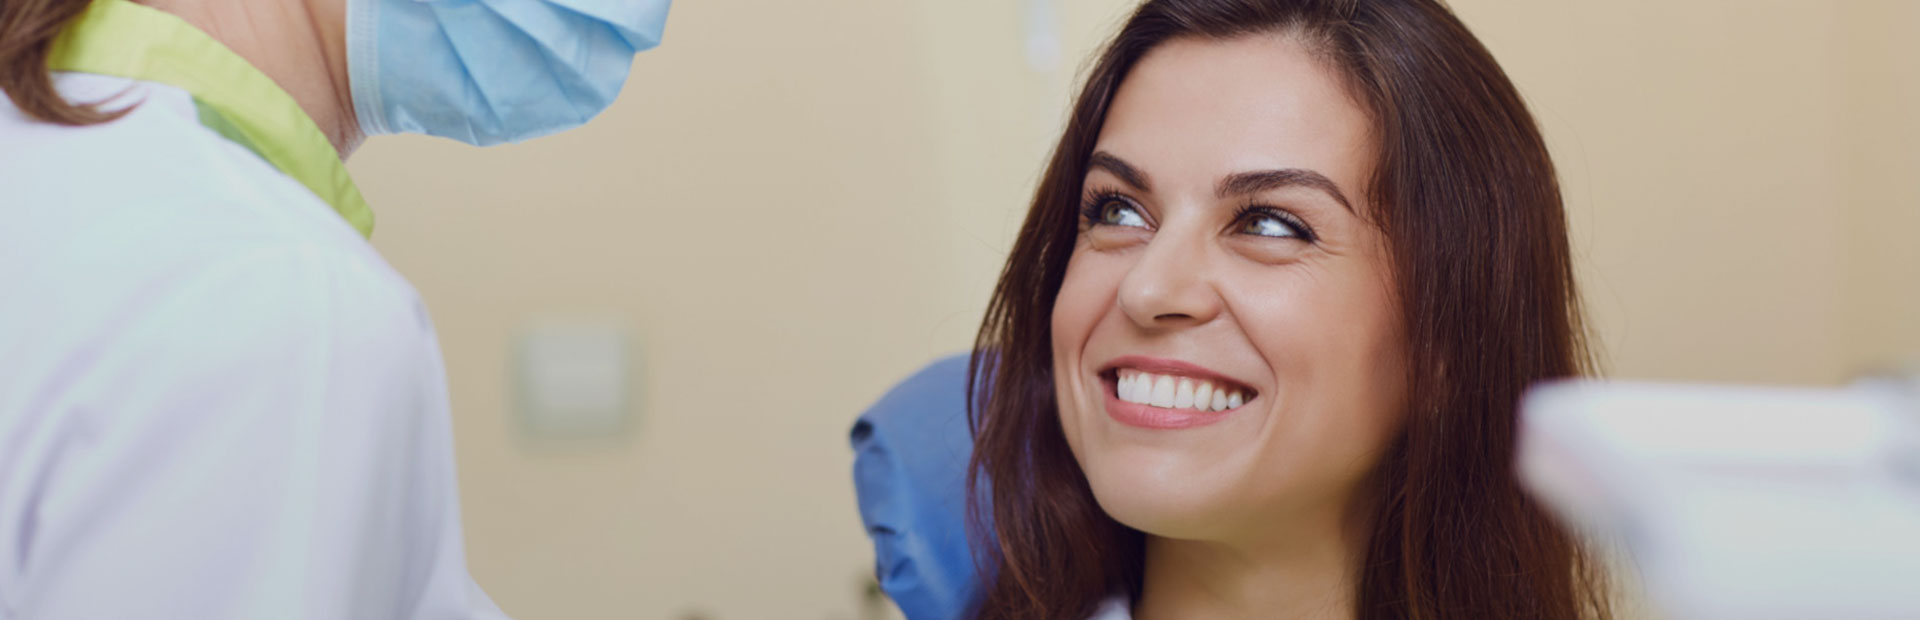 Patient smiling at the dental